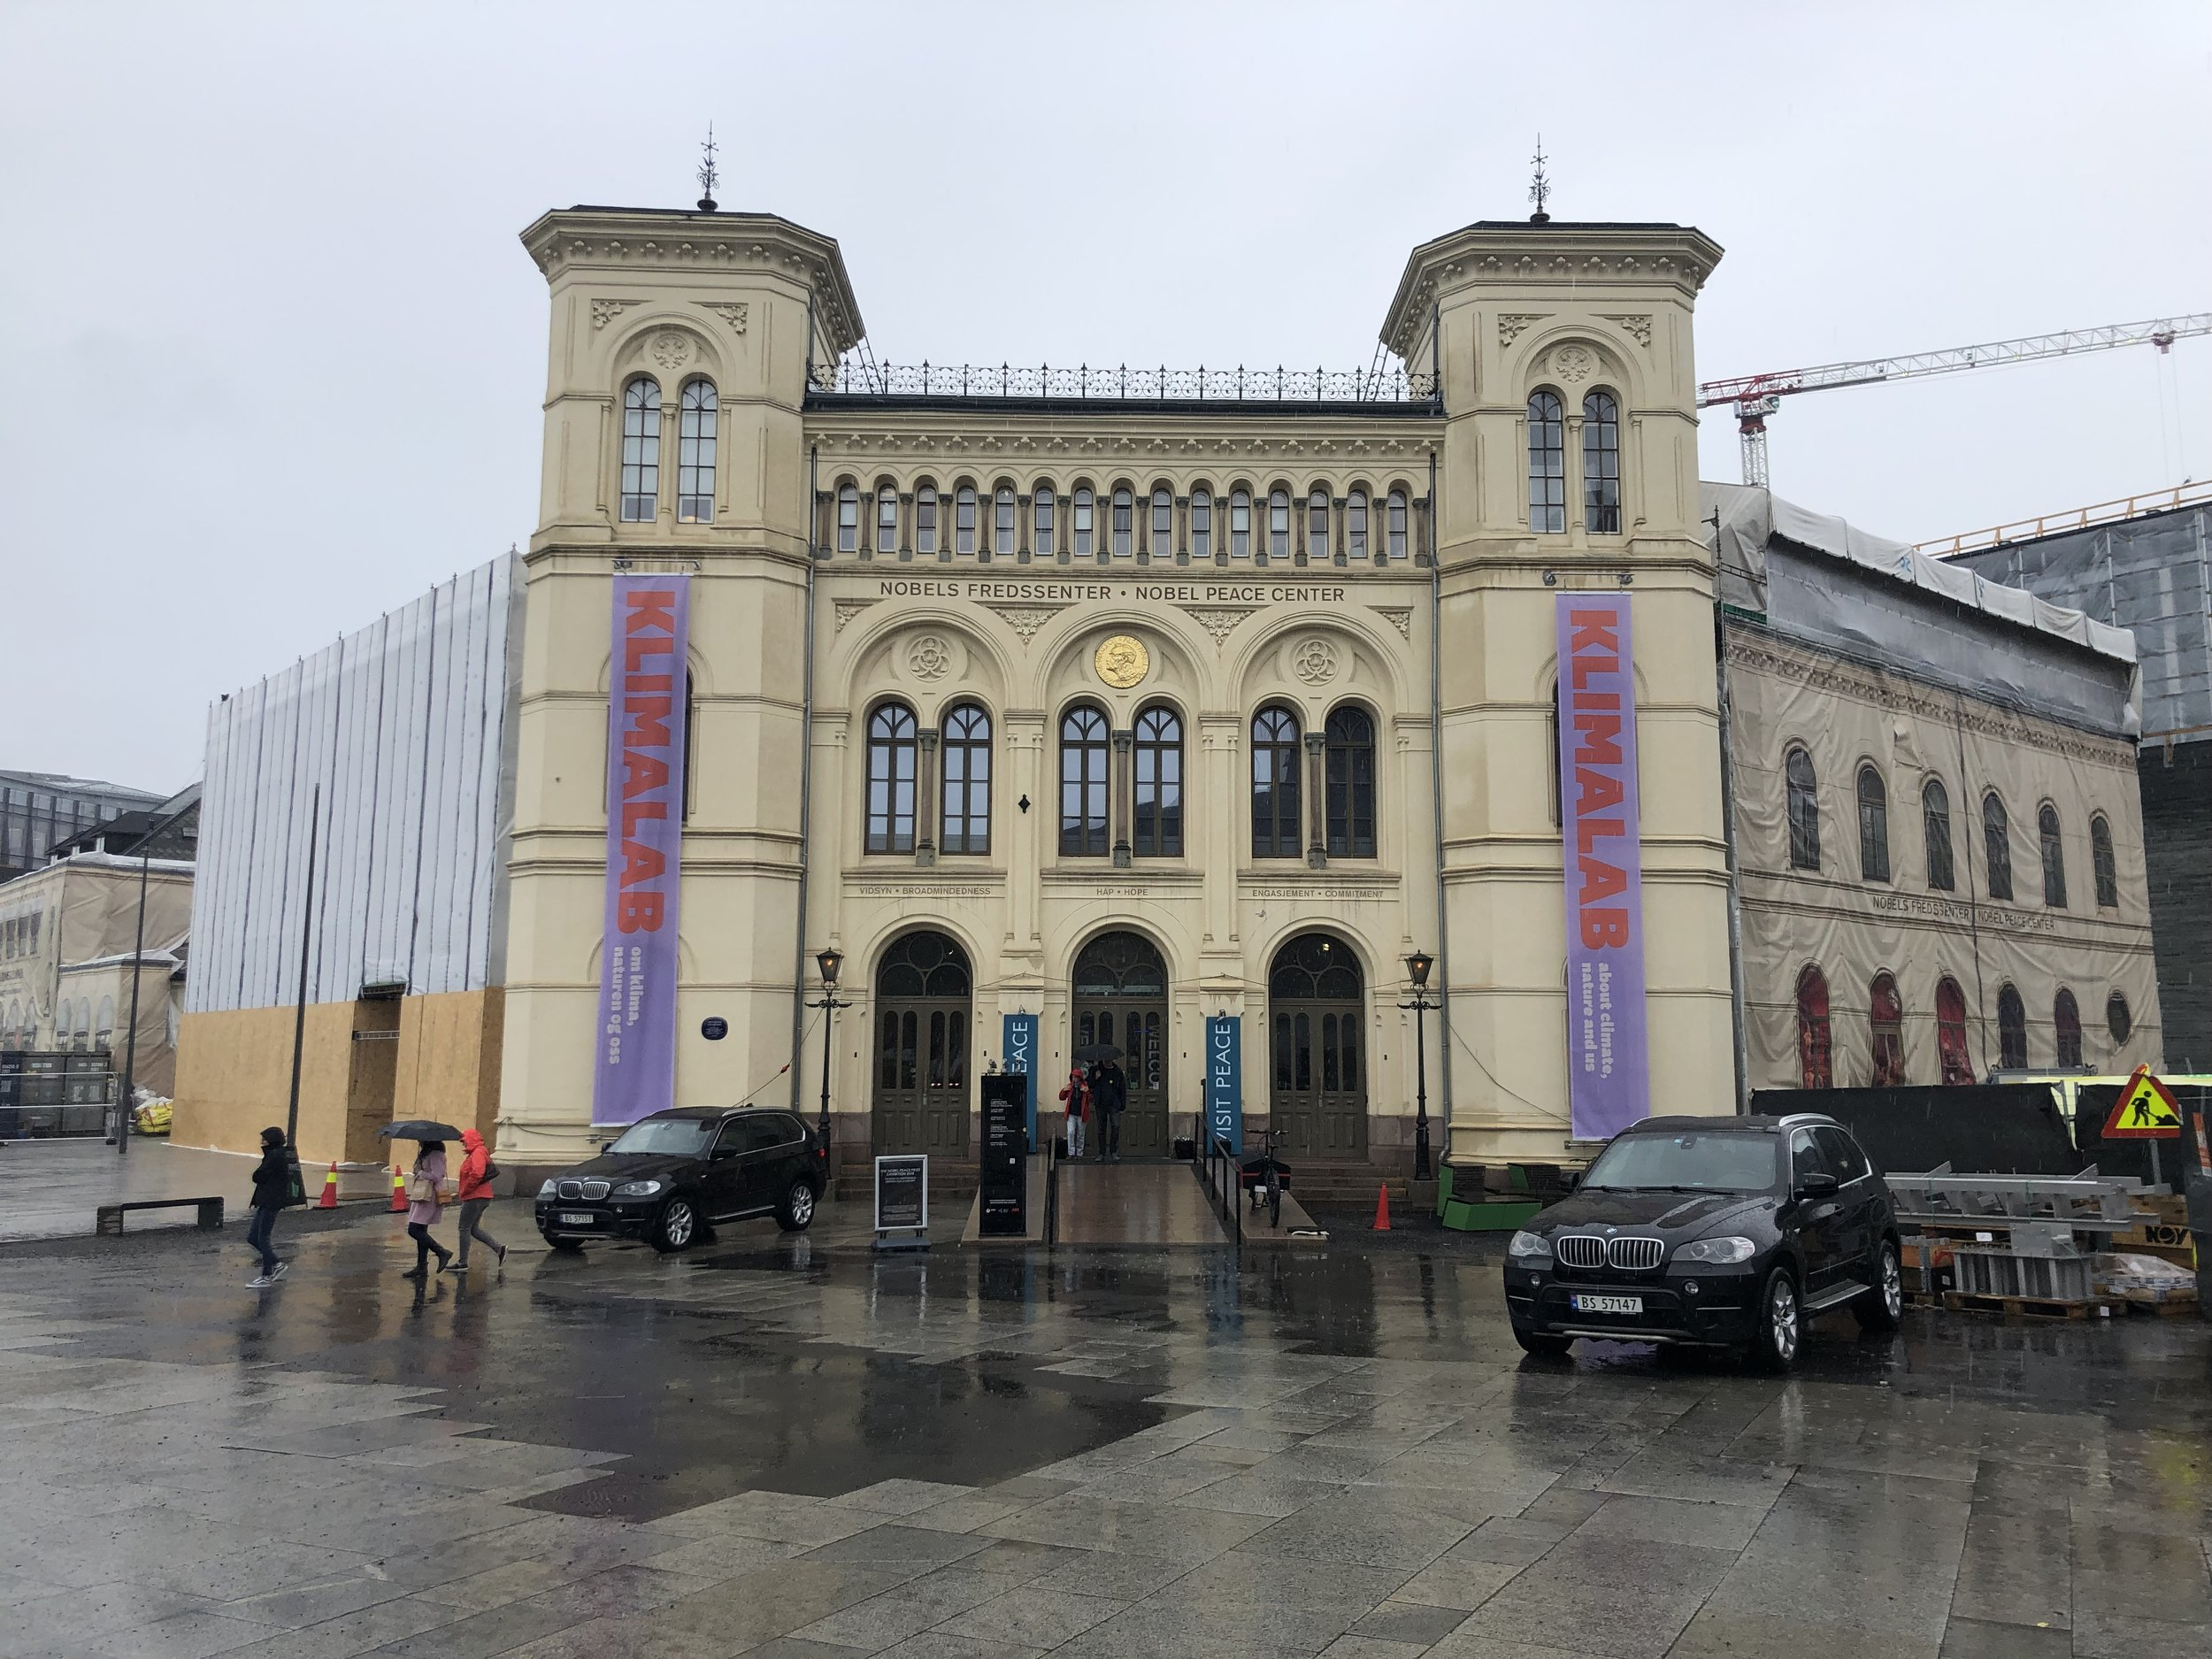 Exterior of the Nobel Peace Prize Center.